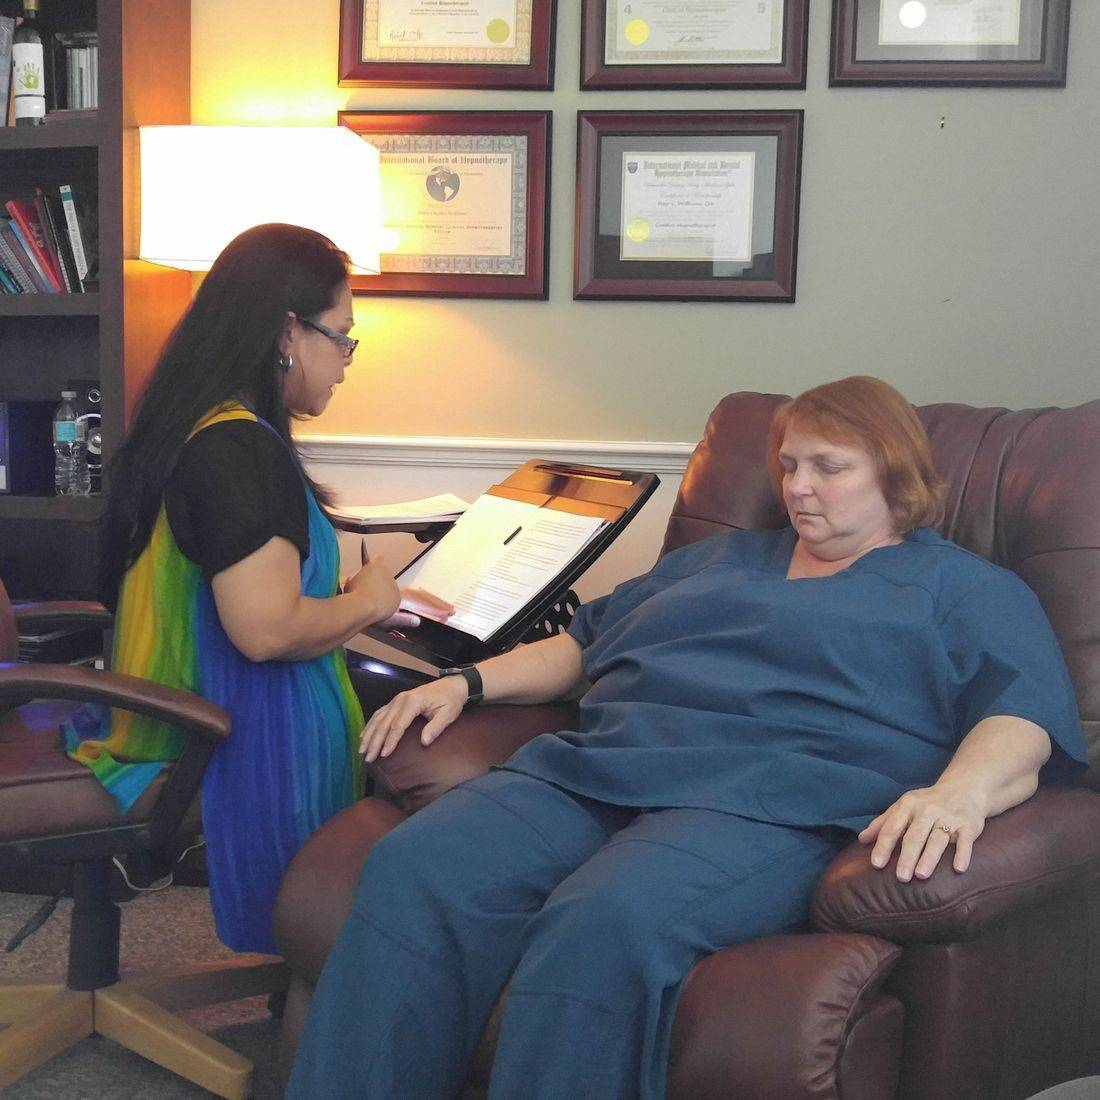 Hypnotherapy client, Hypnosis, Weight loss, Smoking cessation, Naples,